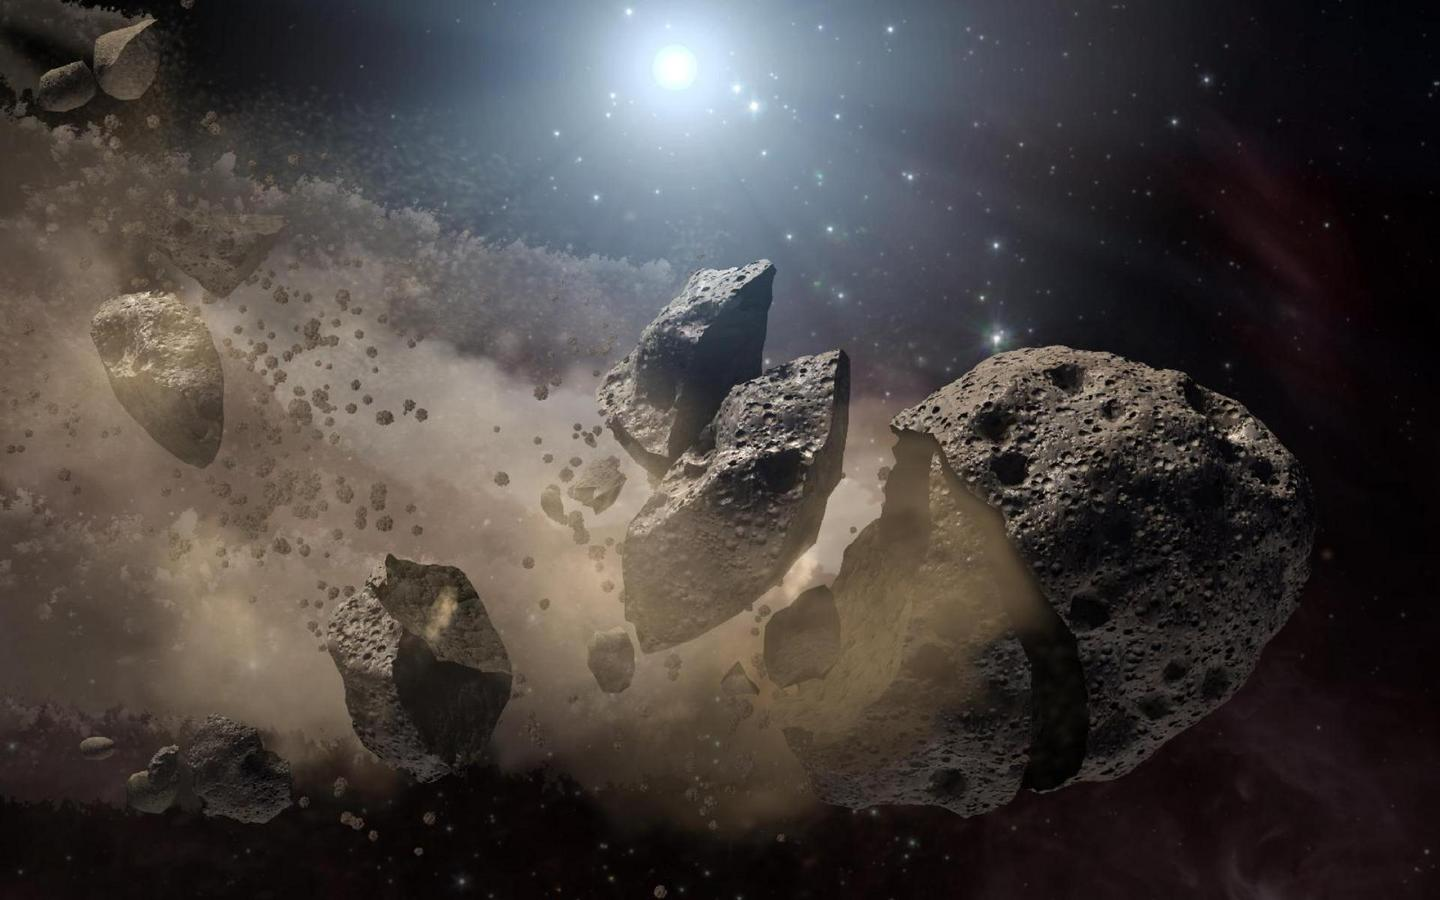 This artist's concept shows a broken-up asteroid. Image credit: NASA/JPL-Caltech